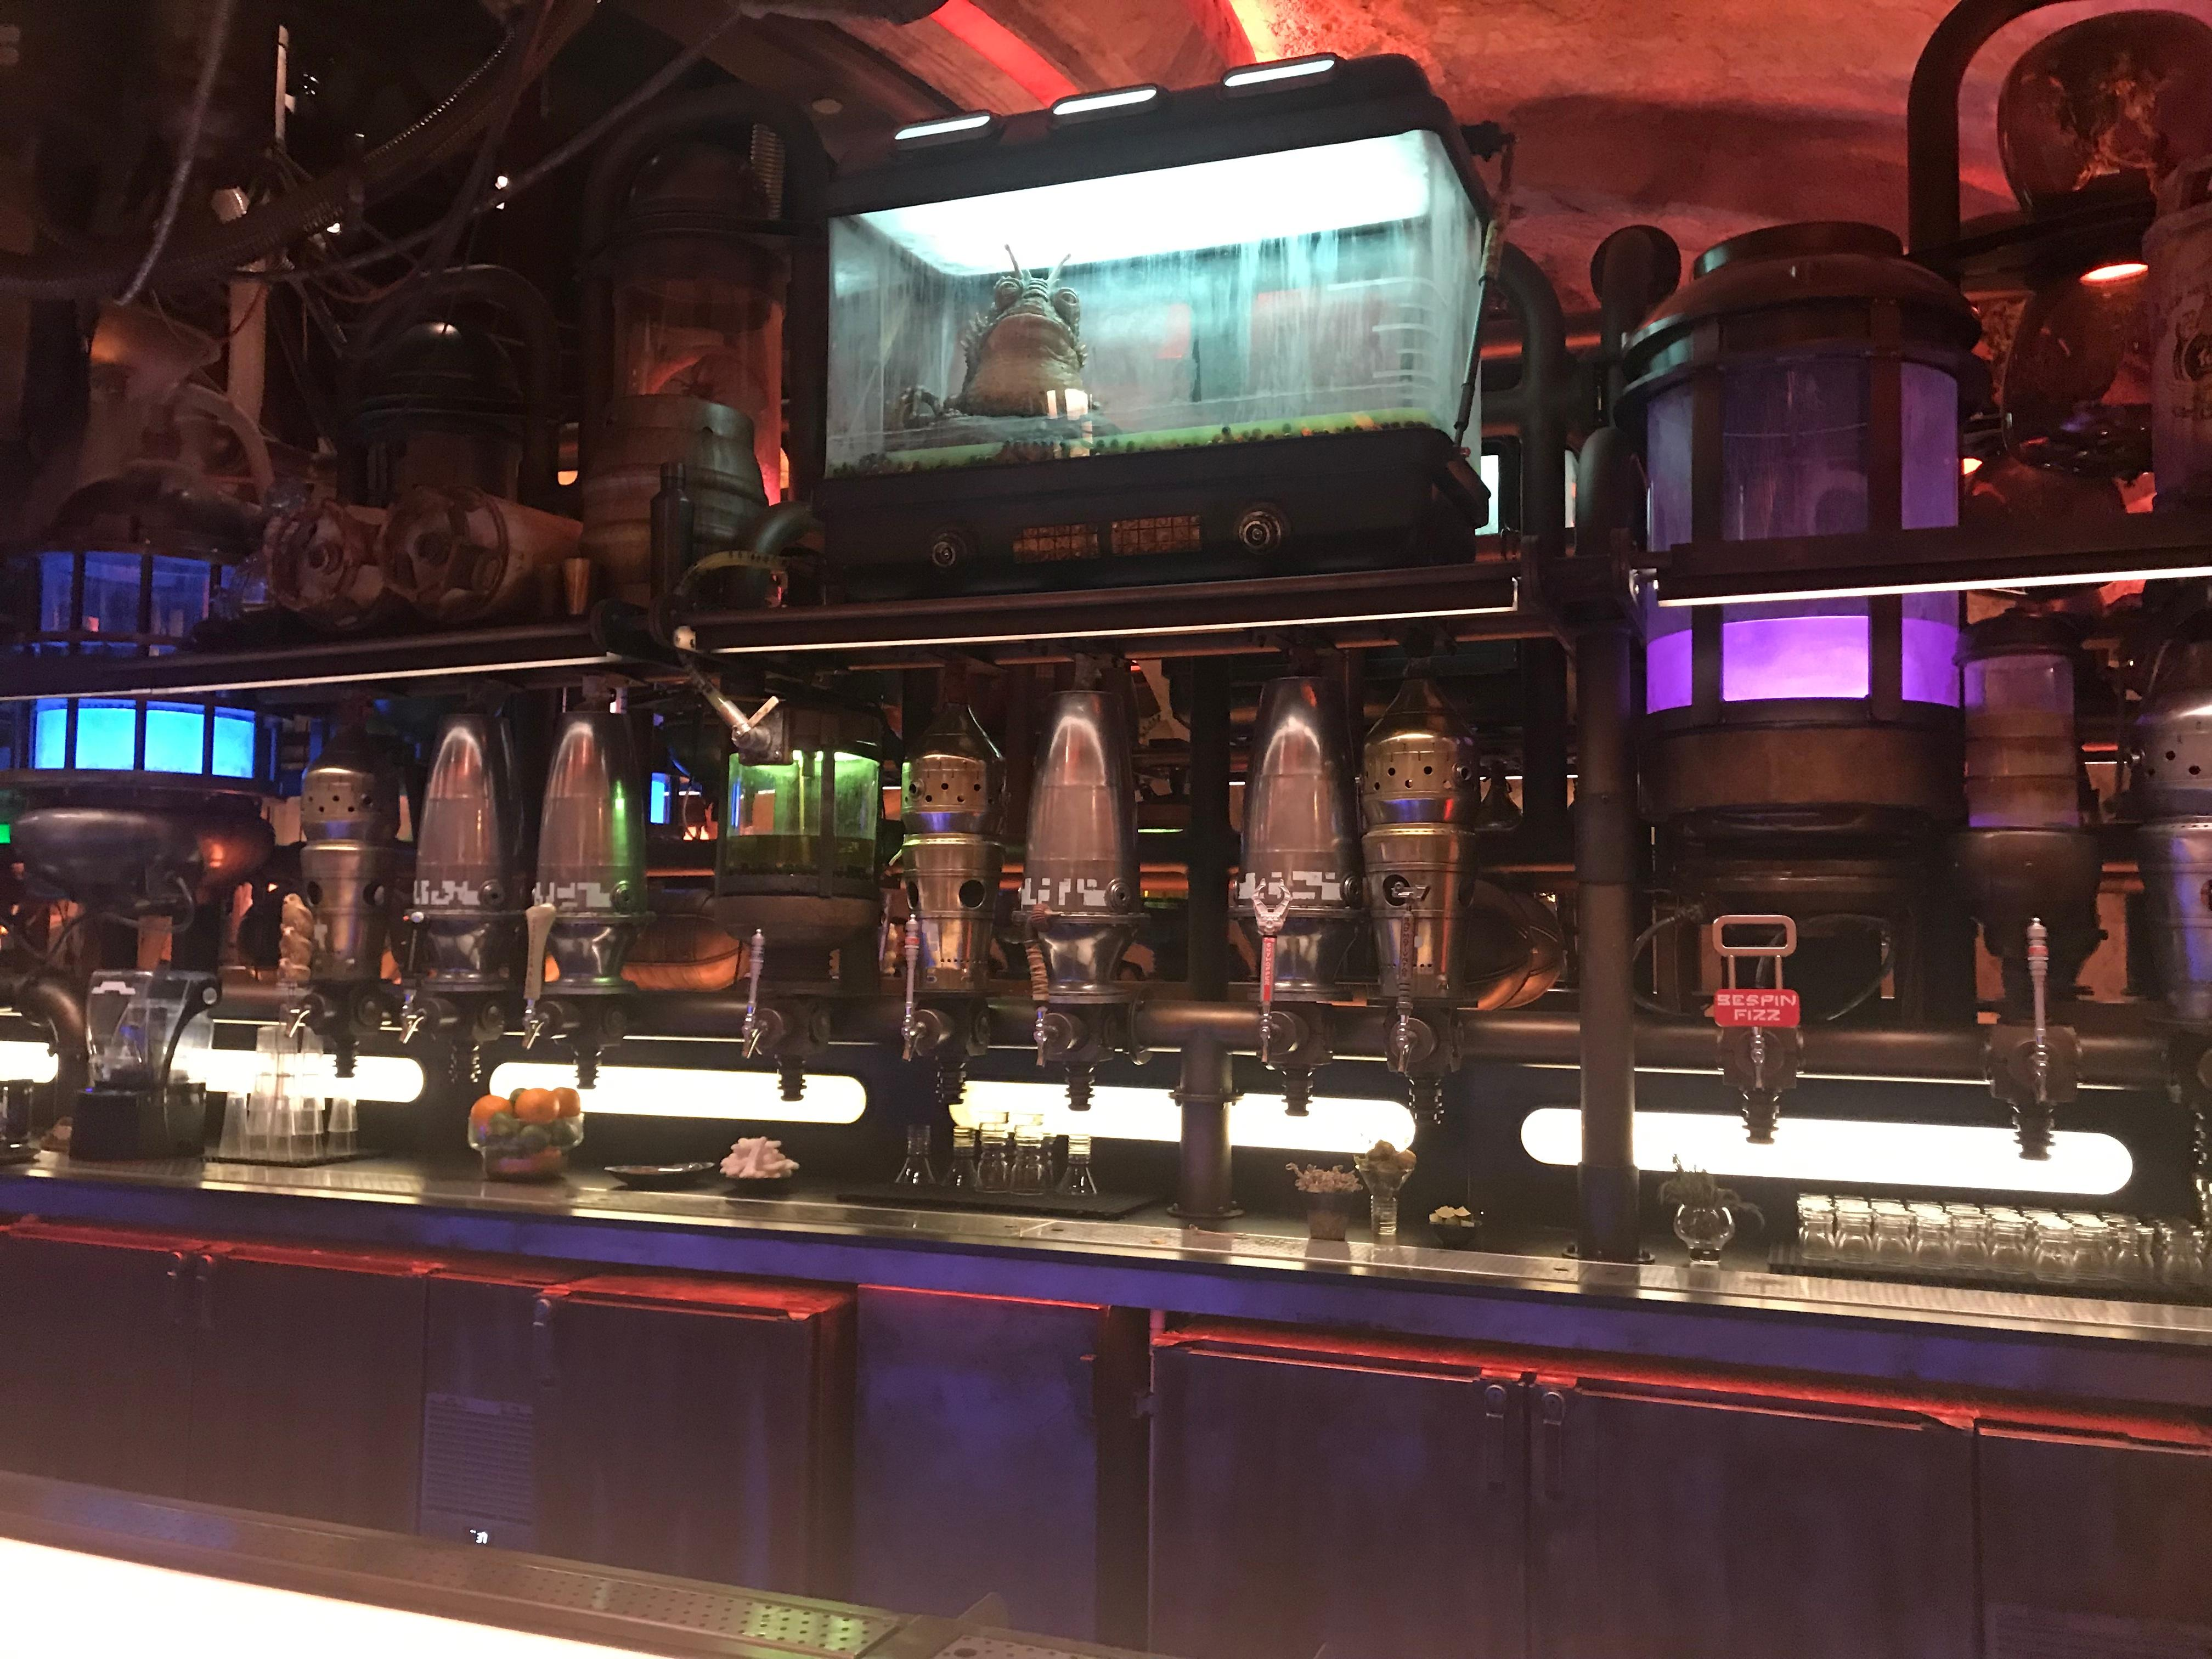 Oga's Cantina offers a variety of drinks for travelers looking to kick back and relax. (Photo: Ryan Michael Painter)